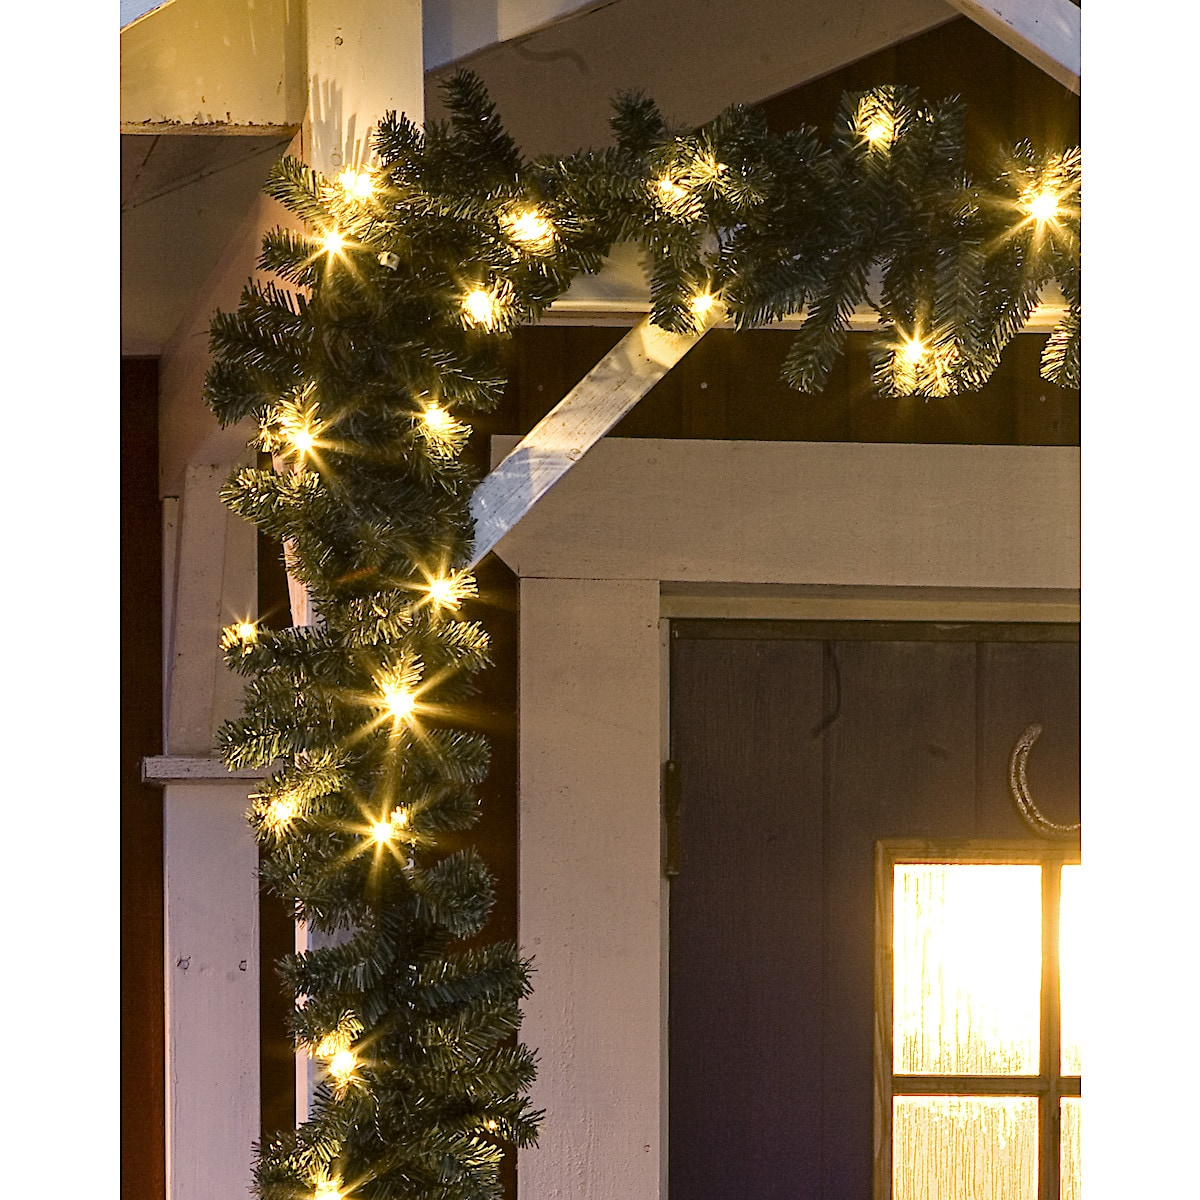 Northlight LED Garland String Light Extension